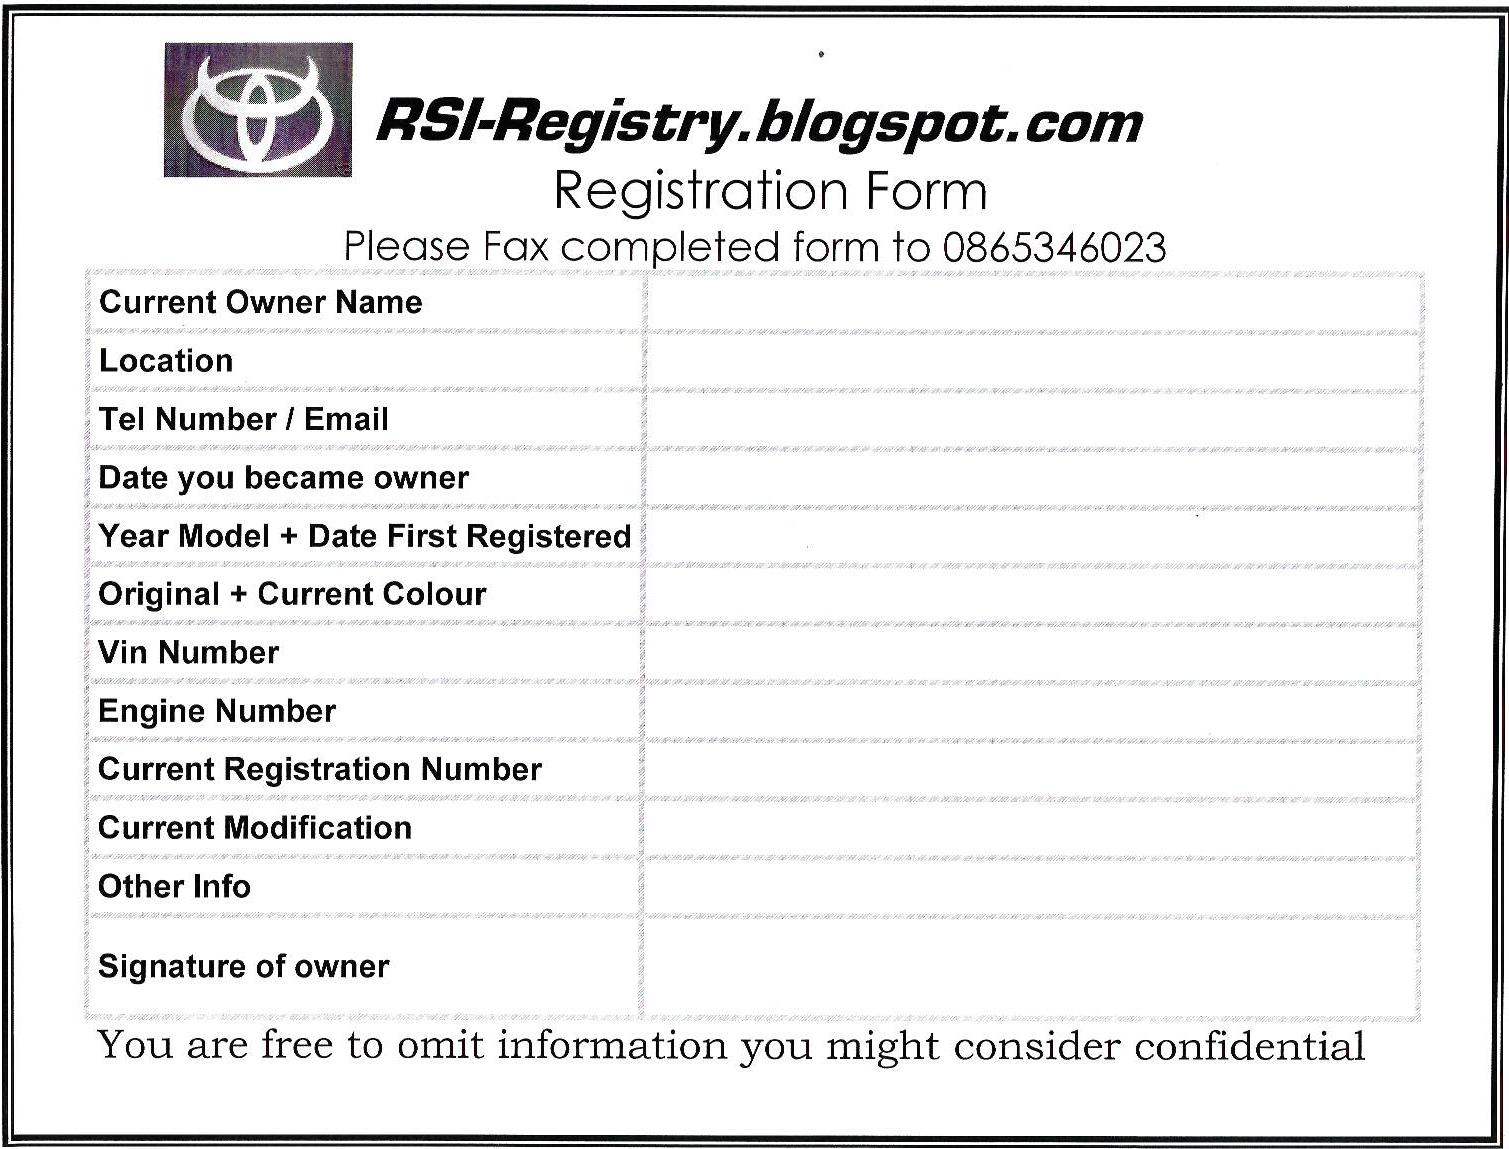 The Rsi Registry Registration Form For The Rsi Registry